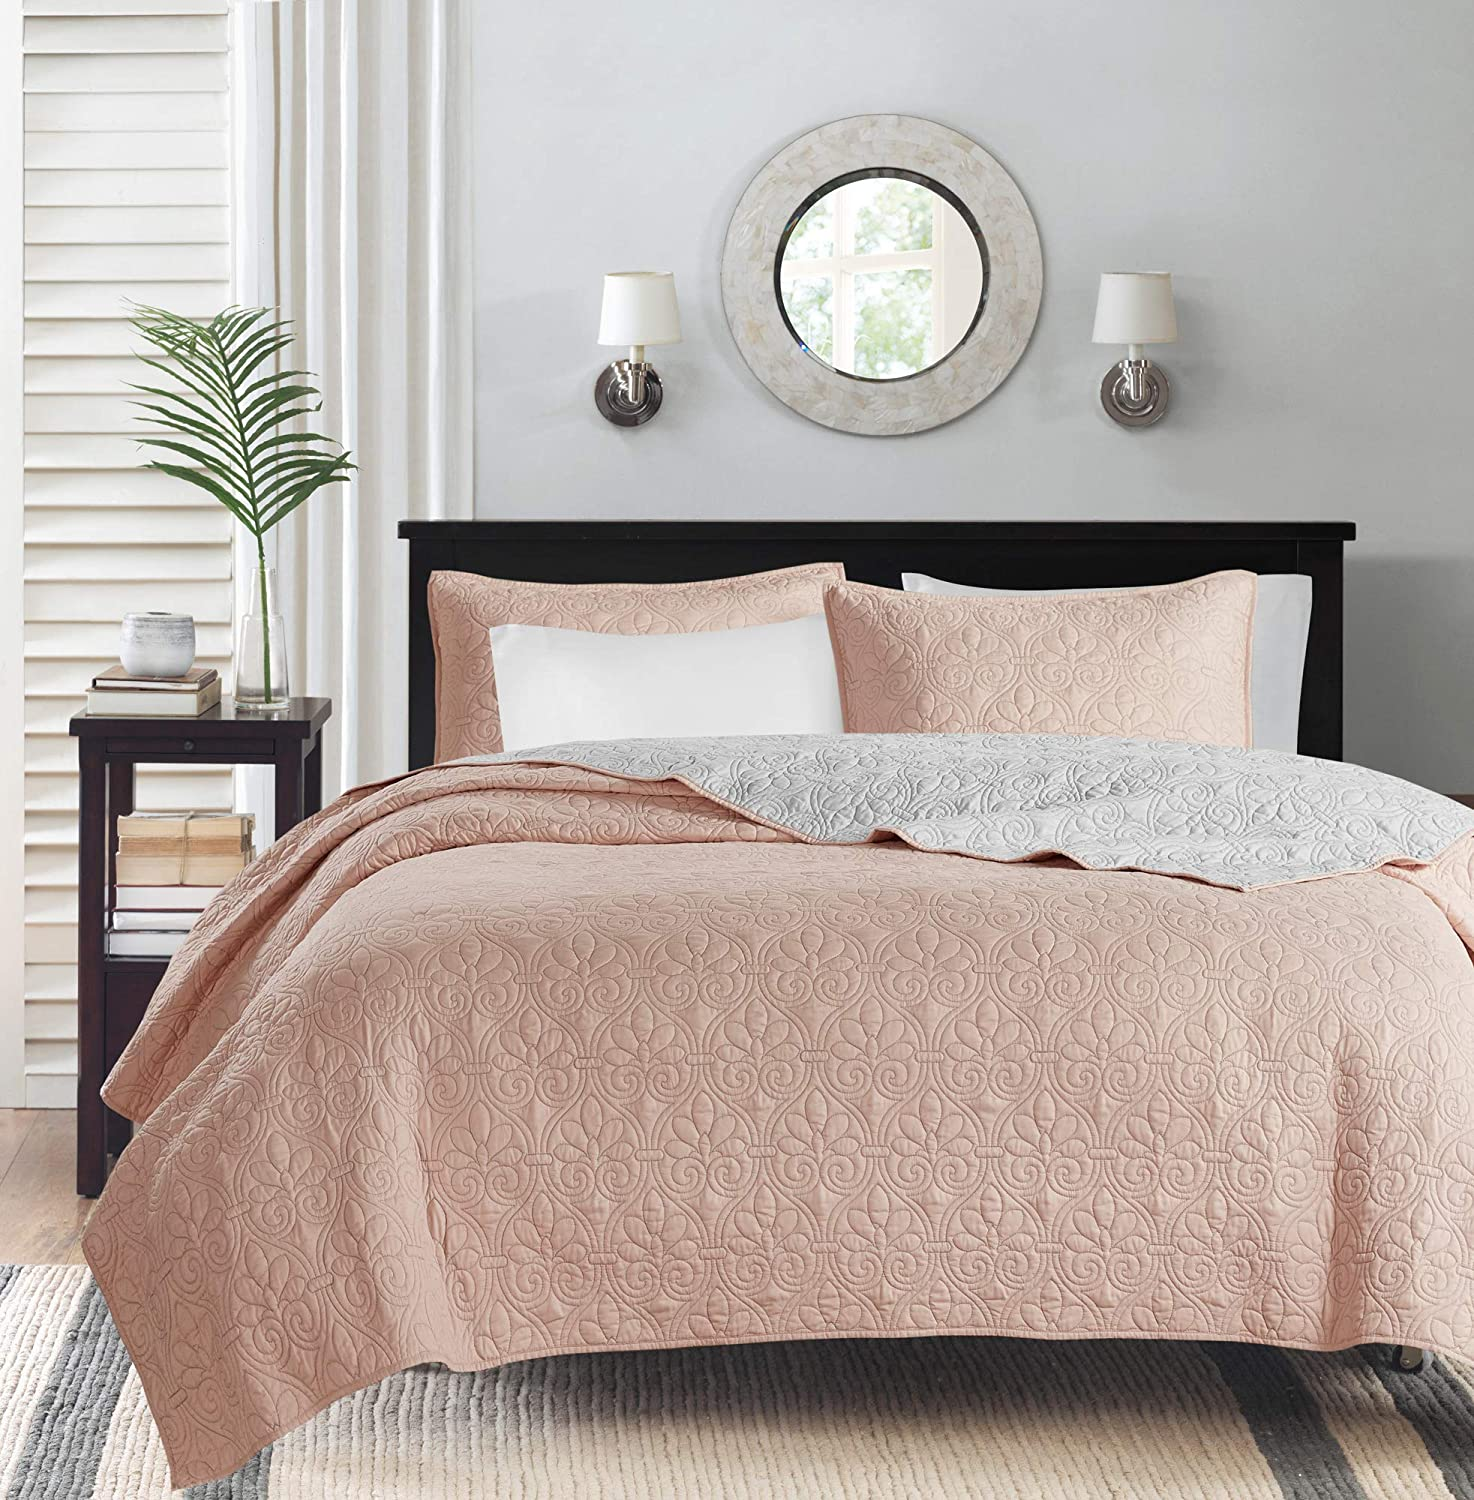 Madison Park Quebec Quilt Set - Luxurious Damask Stitching Design Anti-Microbial, Cotton Filled Lightweight Coverlet Bedspread Bedding, Shams, King/Cal King